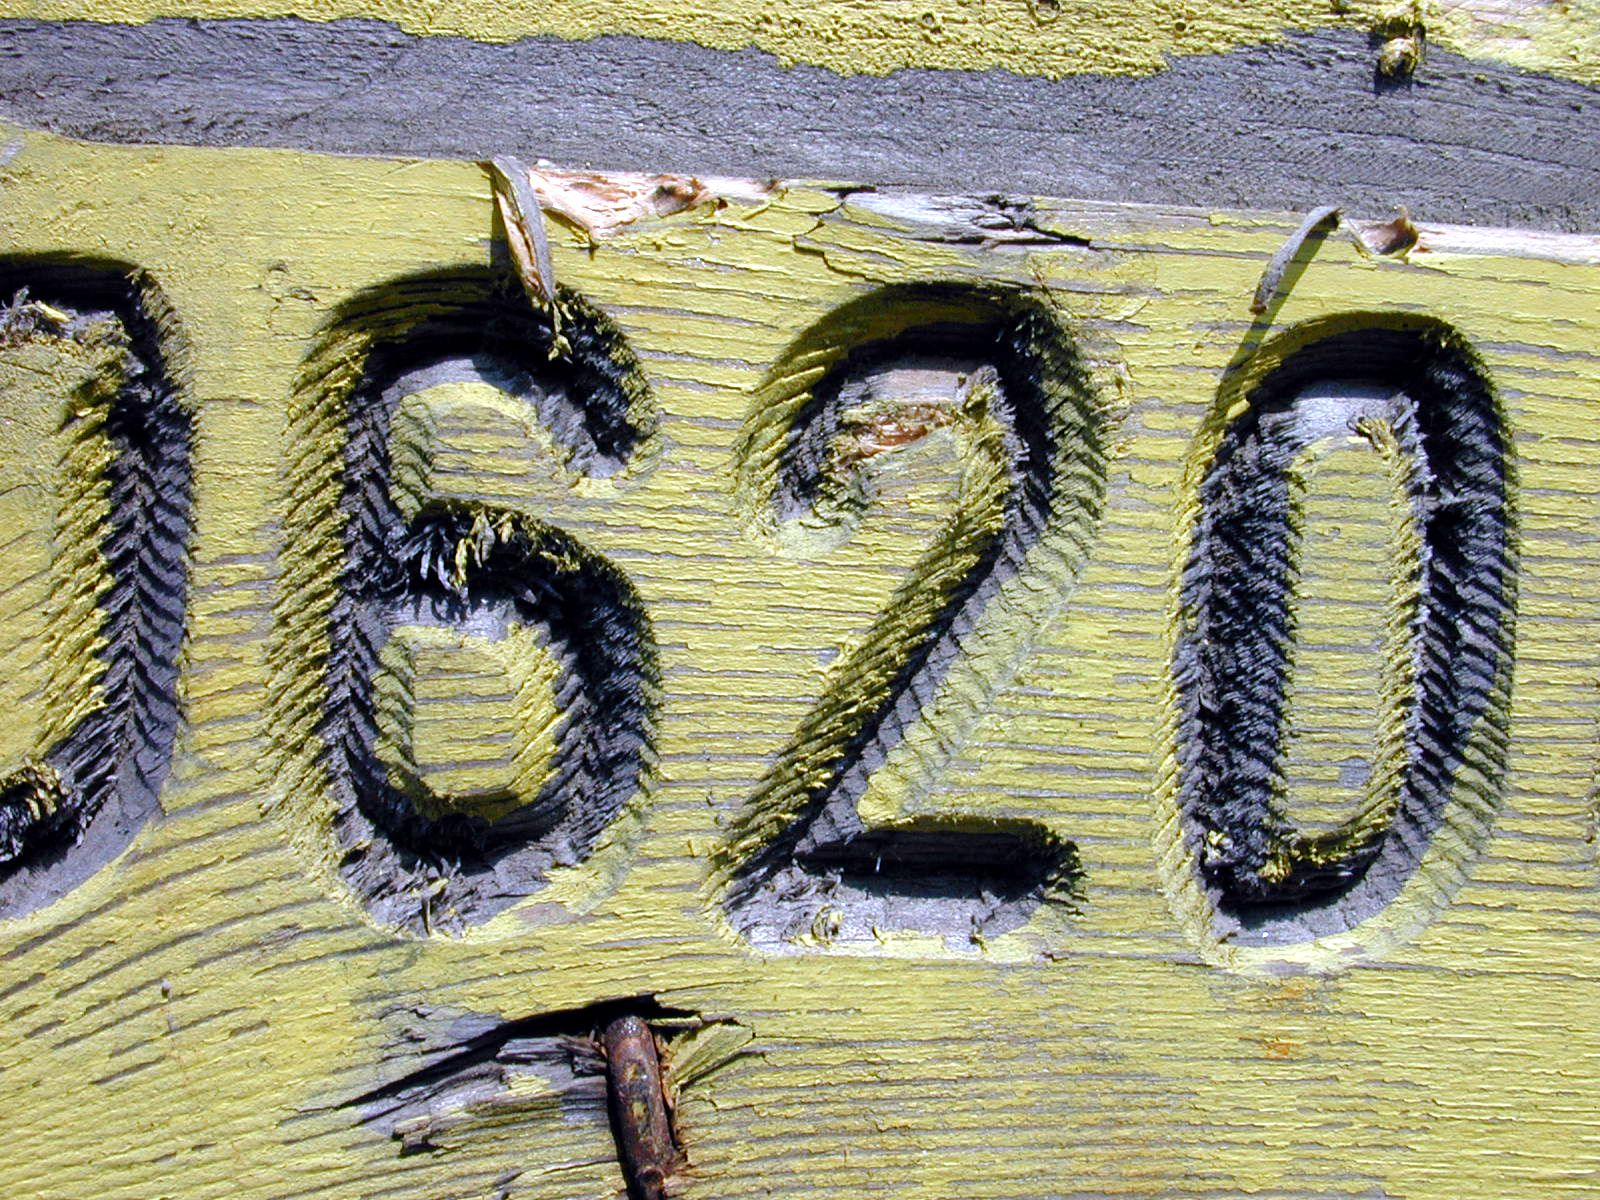 licence plate number plate numbers 6 2 0 wood